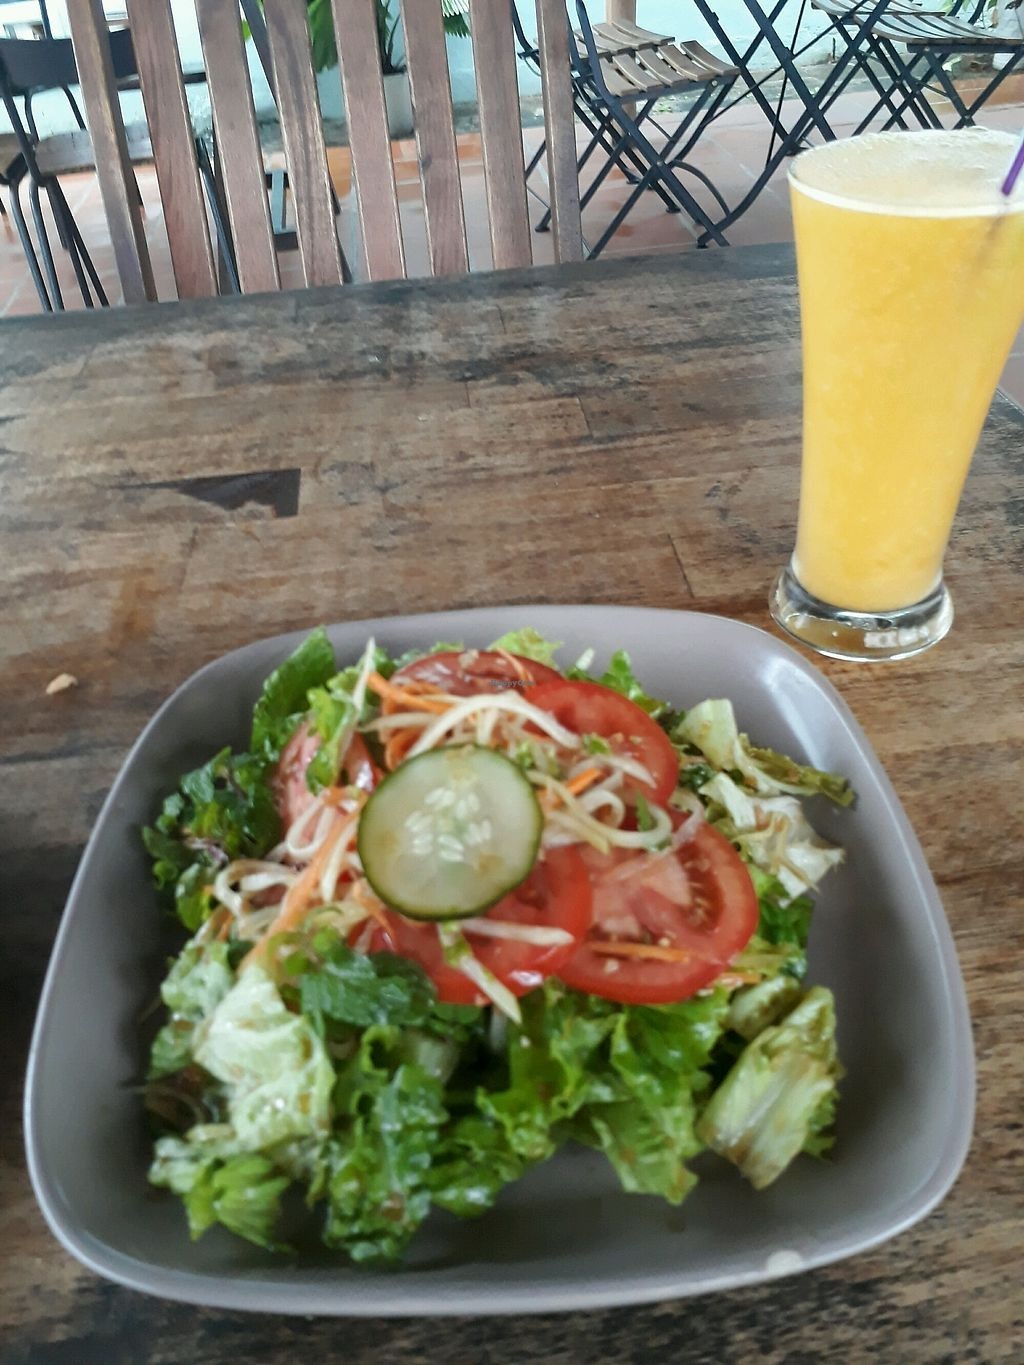 """Photo of Annen Vegetarian & Yoga  by <a href=""""/members/profile/LilacHippy"""">LilacHippy</a> <br/>Annen Salad and Mango and Orange Juice <br/> December 26, 2017  - <a href='/contact/abuse/image/68316/339141'>Report</a>"""